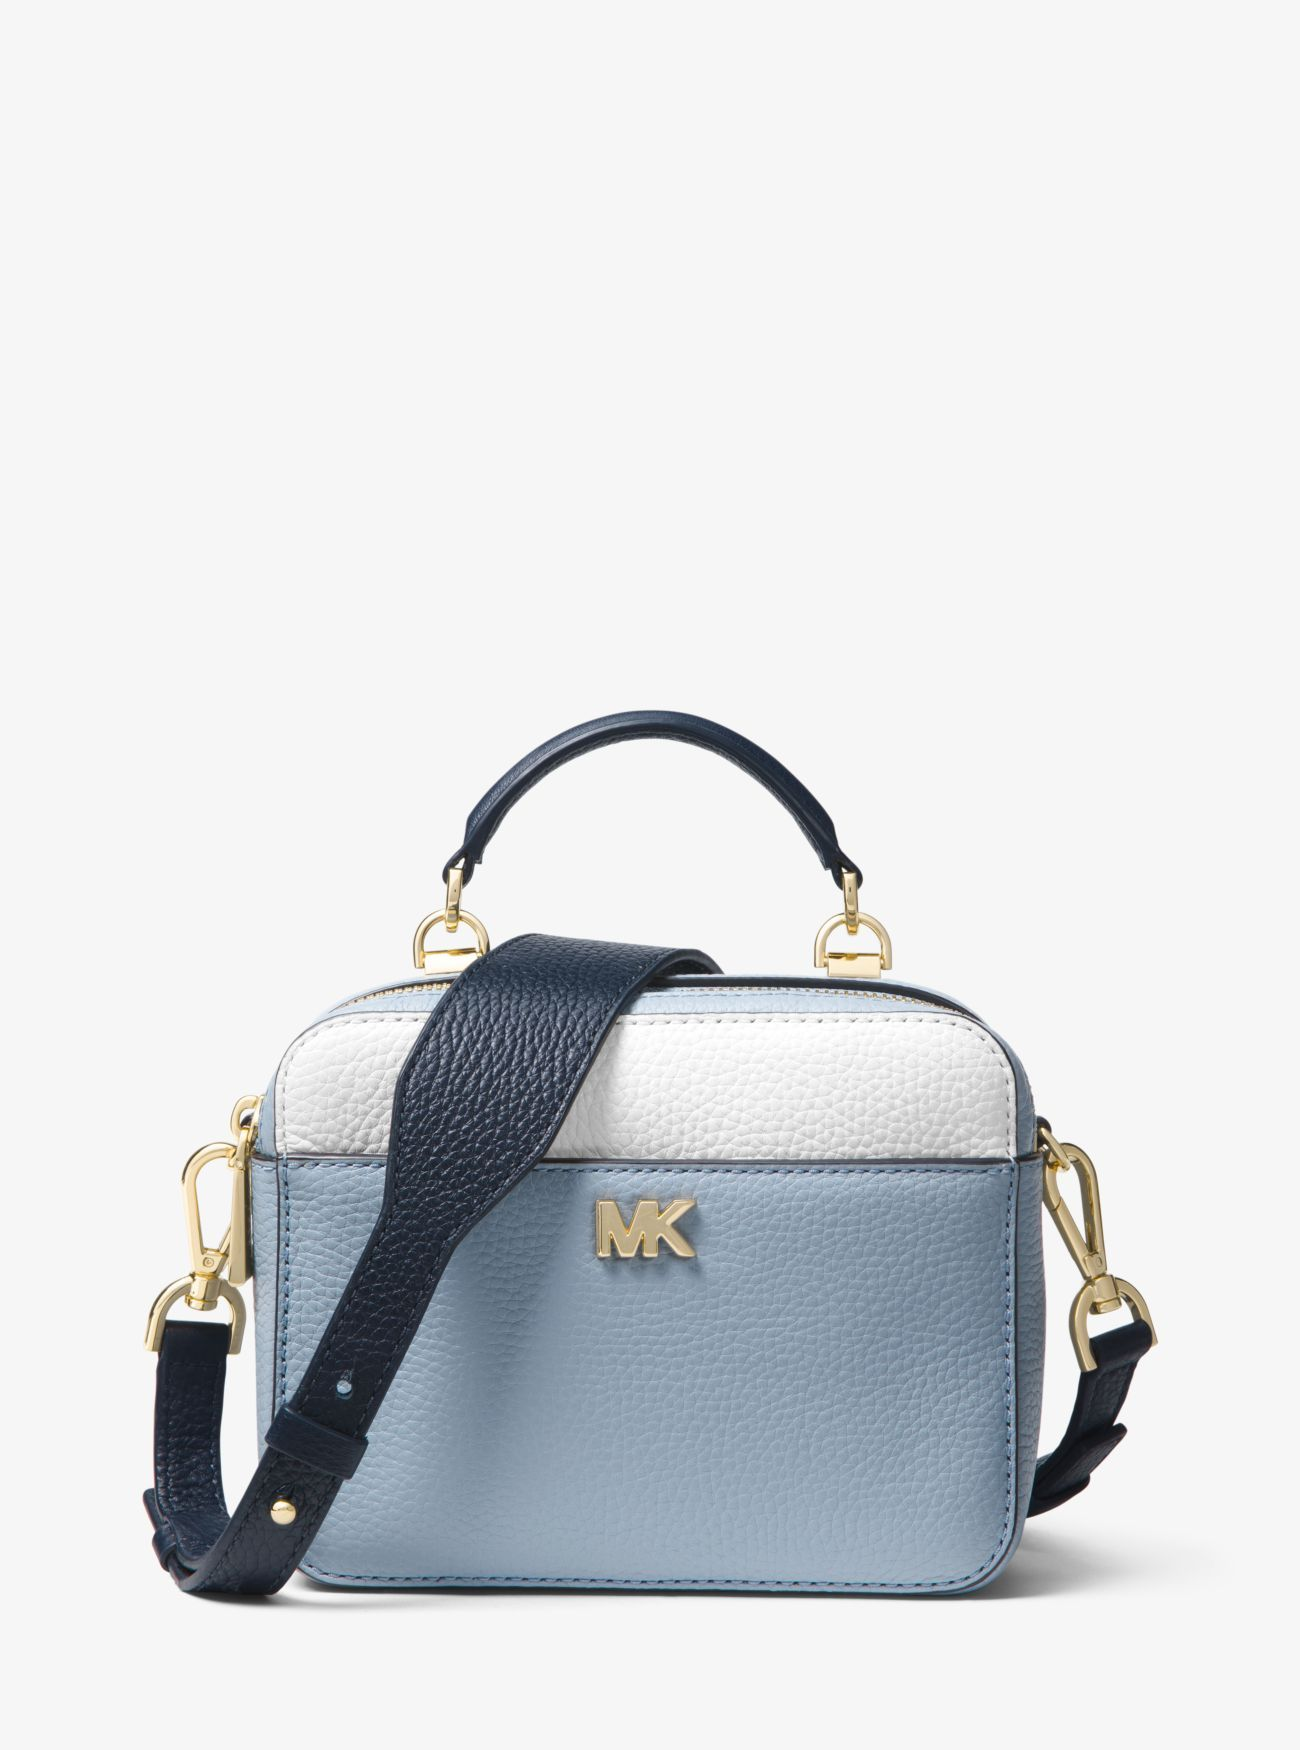 783af336e0ab Mott Mini Color-Block Pebbled Leather Crossbody. Mott Mini Color-Block  Pebbled Leather Crossbody Michael Kors Bag